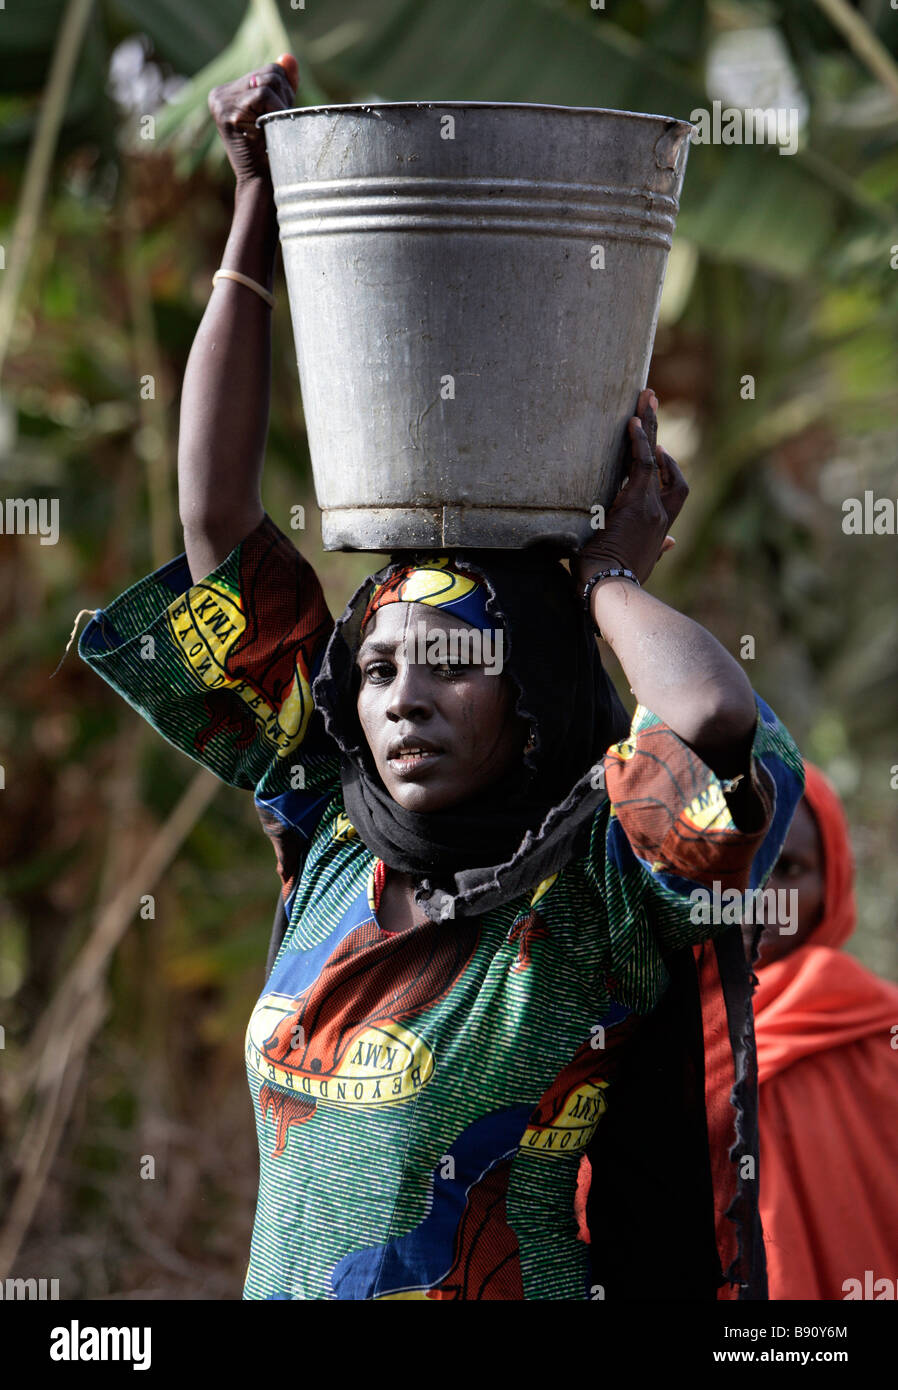 Nigeria: Woman with a water bucket balanced on her head - Stock Image